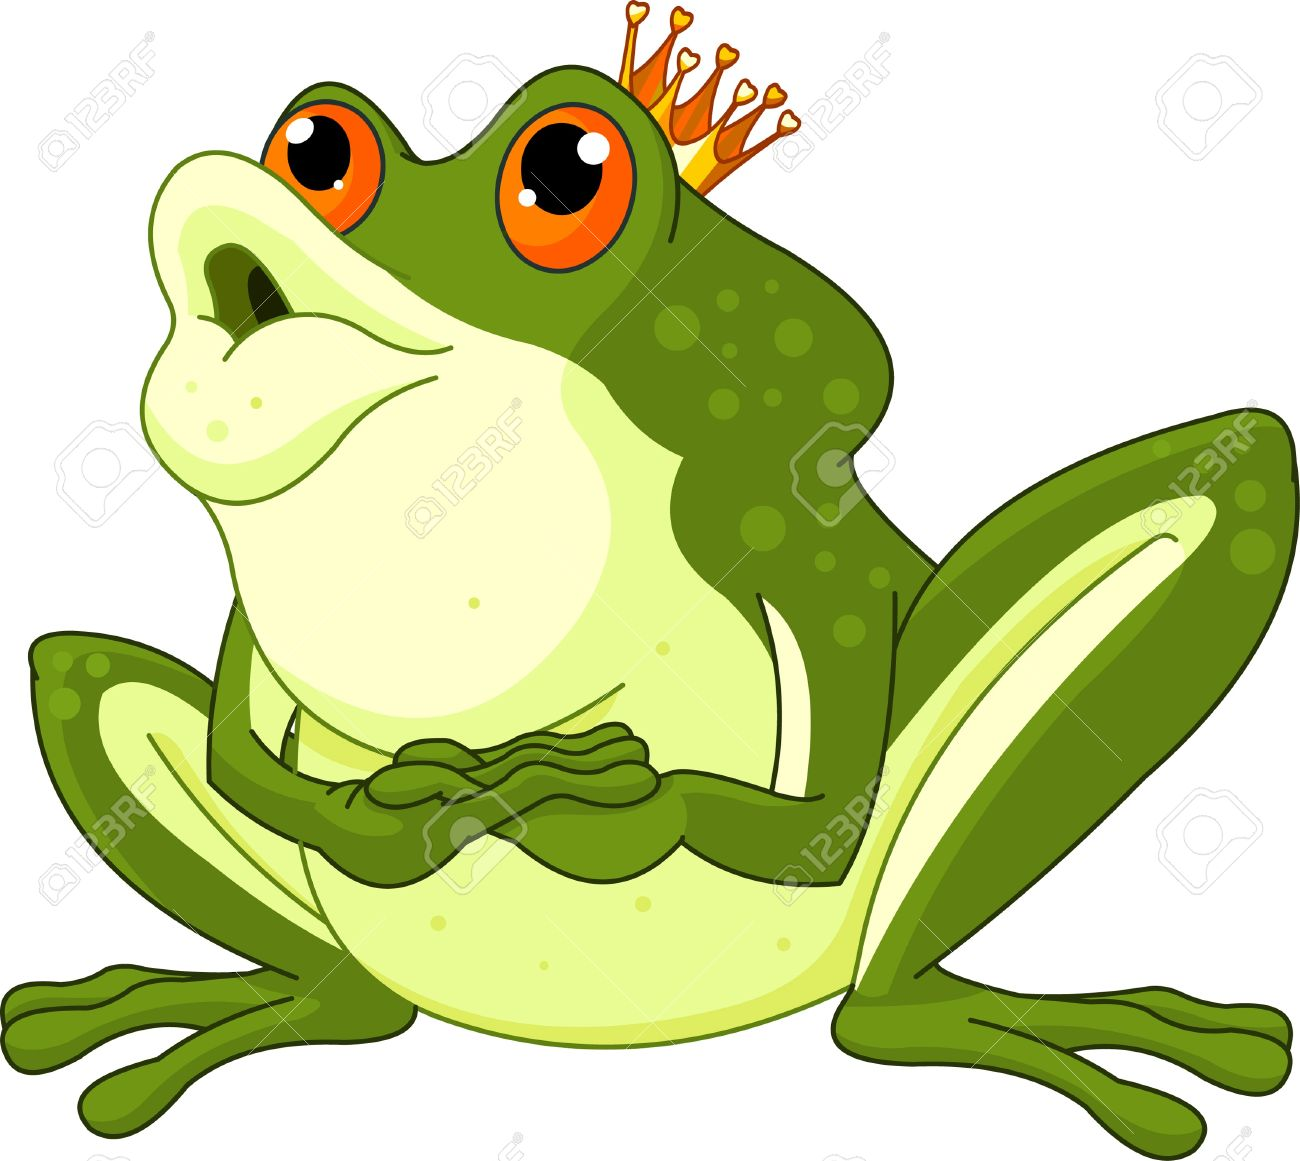 clip art of a frog prince waiting to be kissed royalty free cliparts rh 123rf com